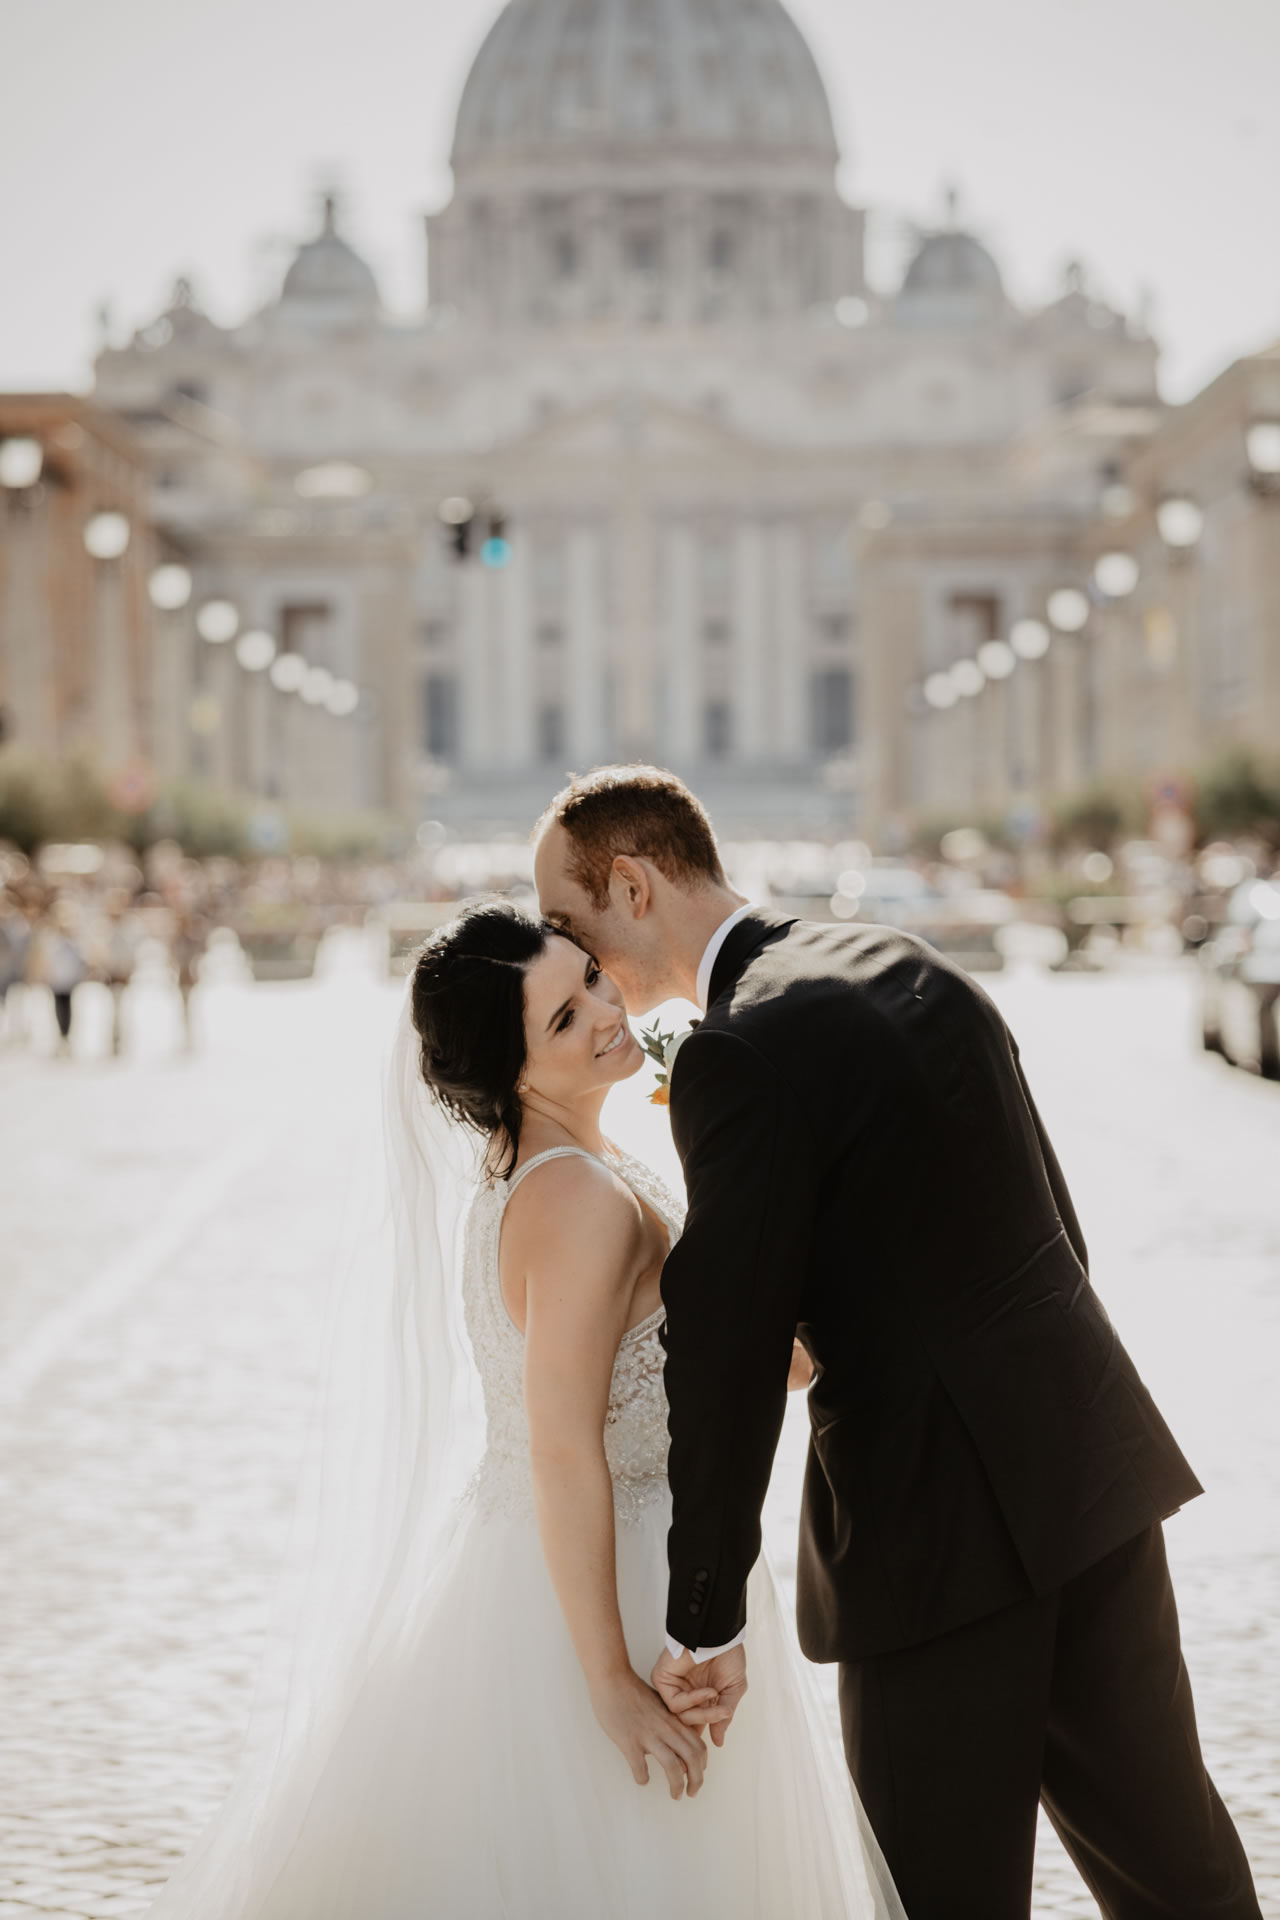 A breath-taking wedding in Rome, the eternal city :: Luxury wedding photography - 23